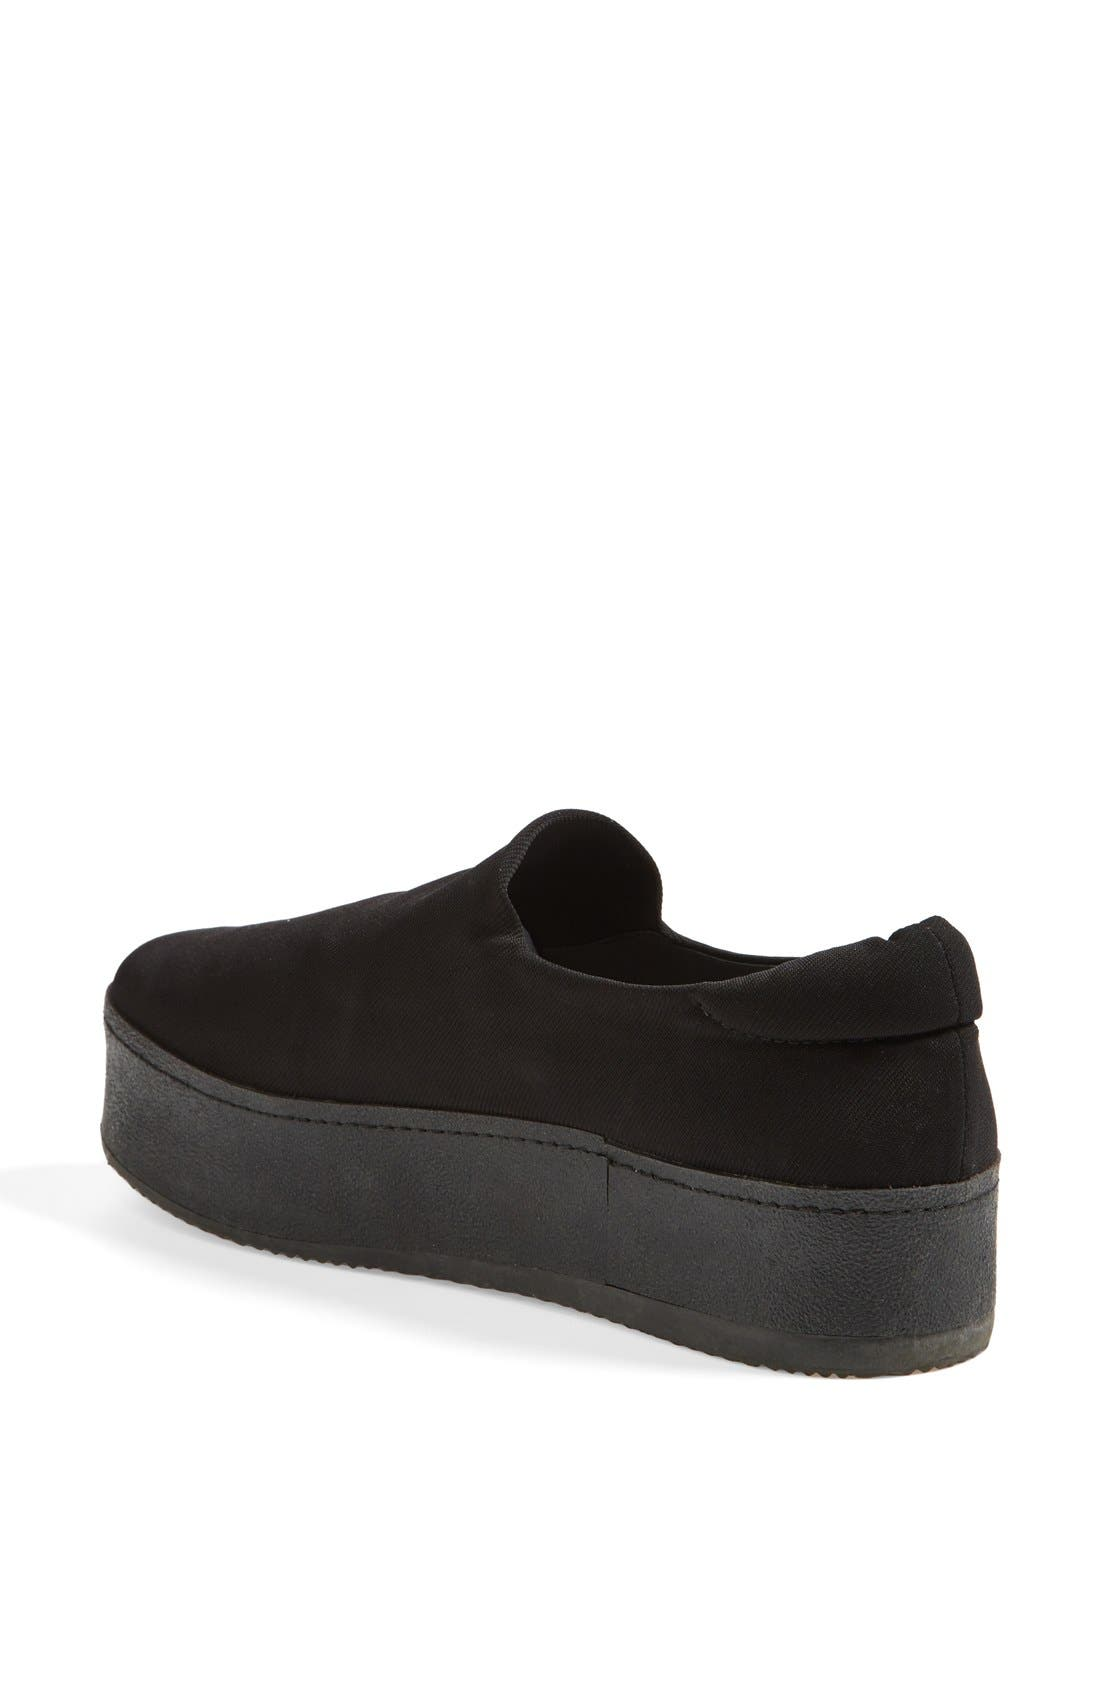 Alternate Image 2  - Opening Ceremony 'Grunge' Slip-On Platform Sneaker (Women)